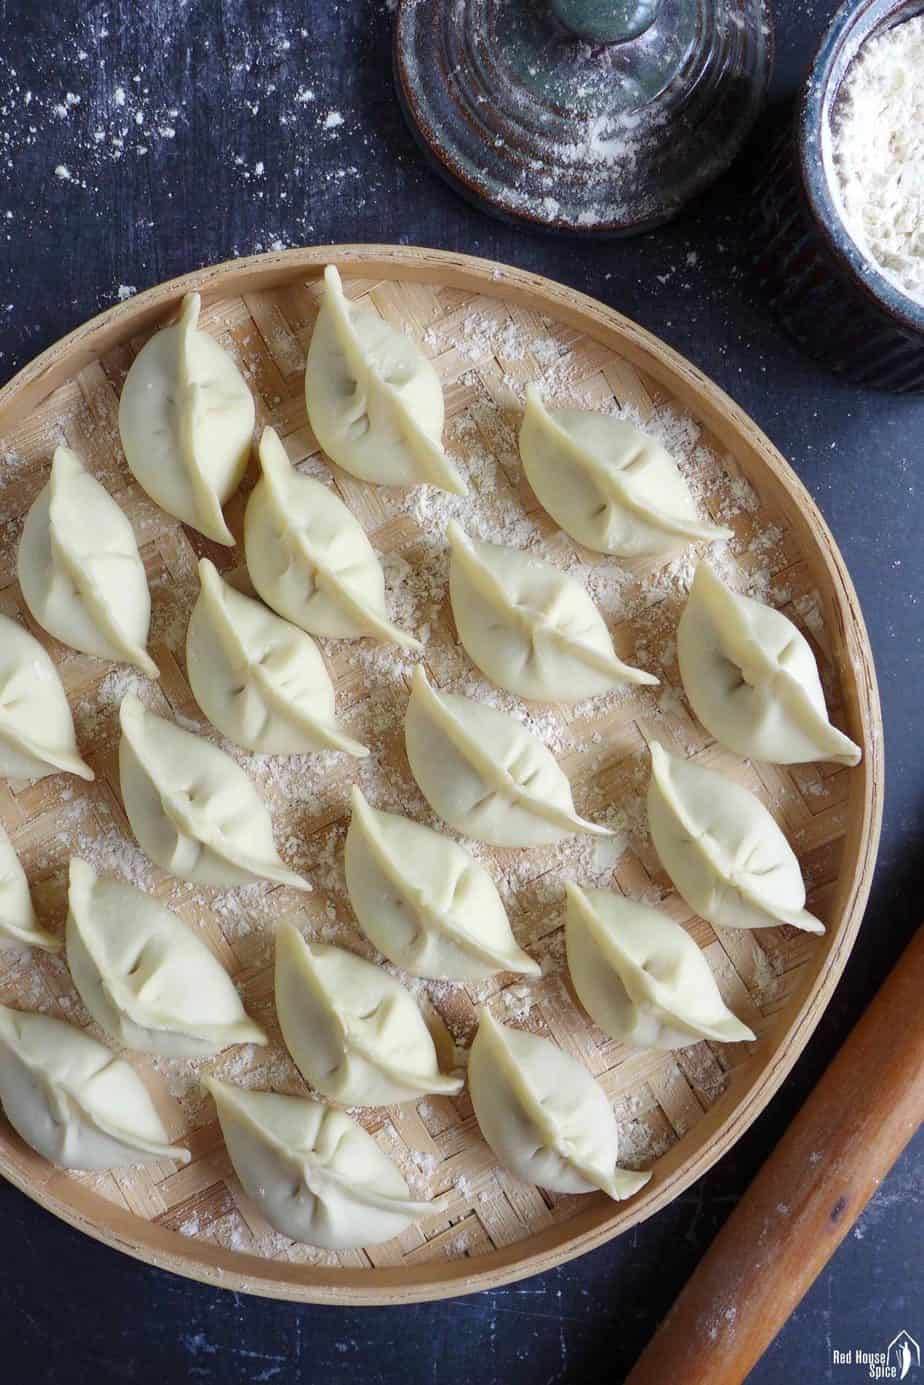 uncooked Chinese dumplings